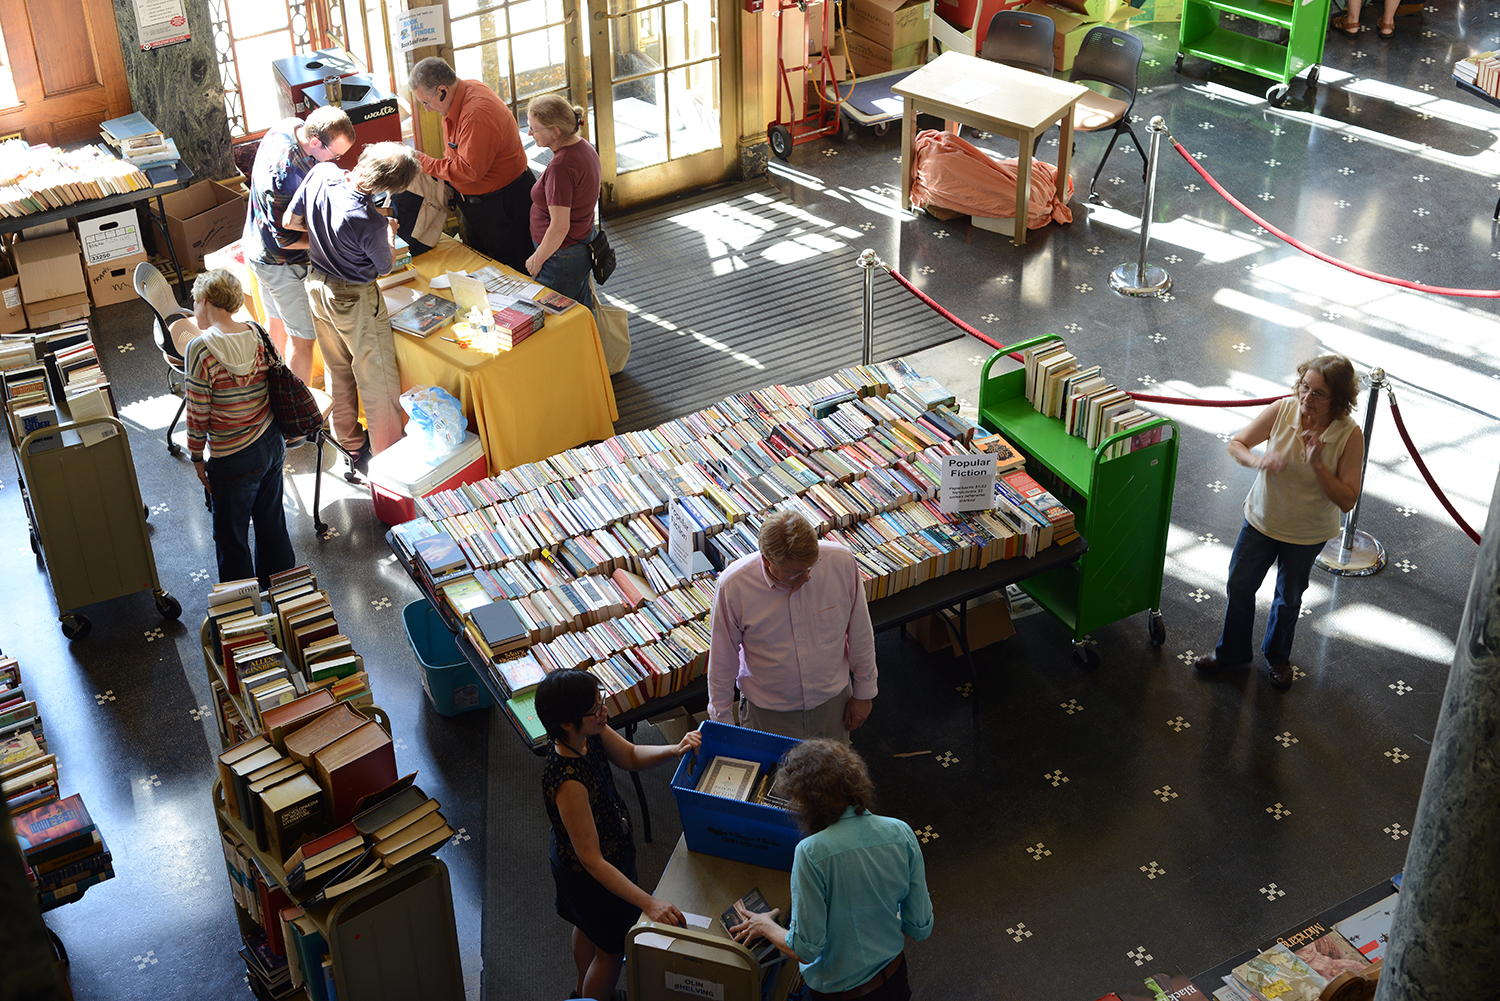 The book sale was open to Wesleyan students, faculty and staff, and the local community.